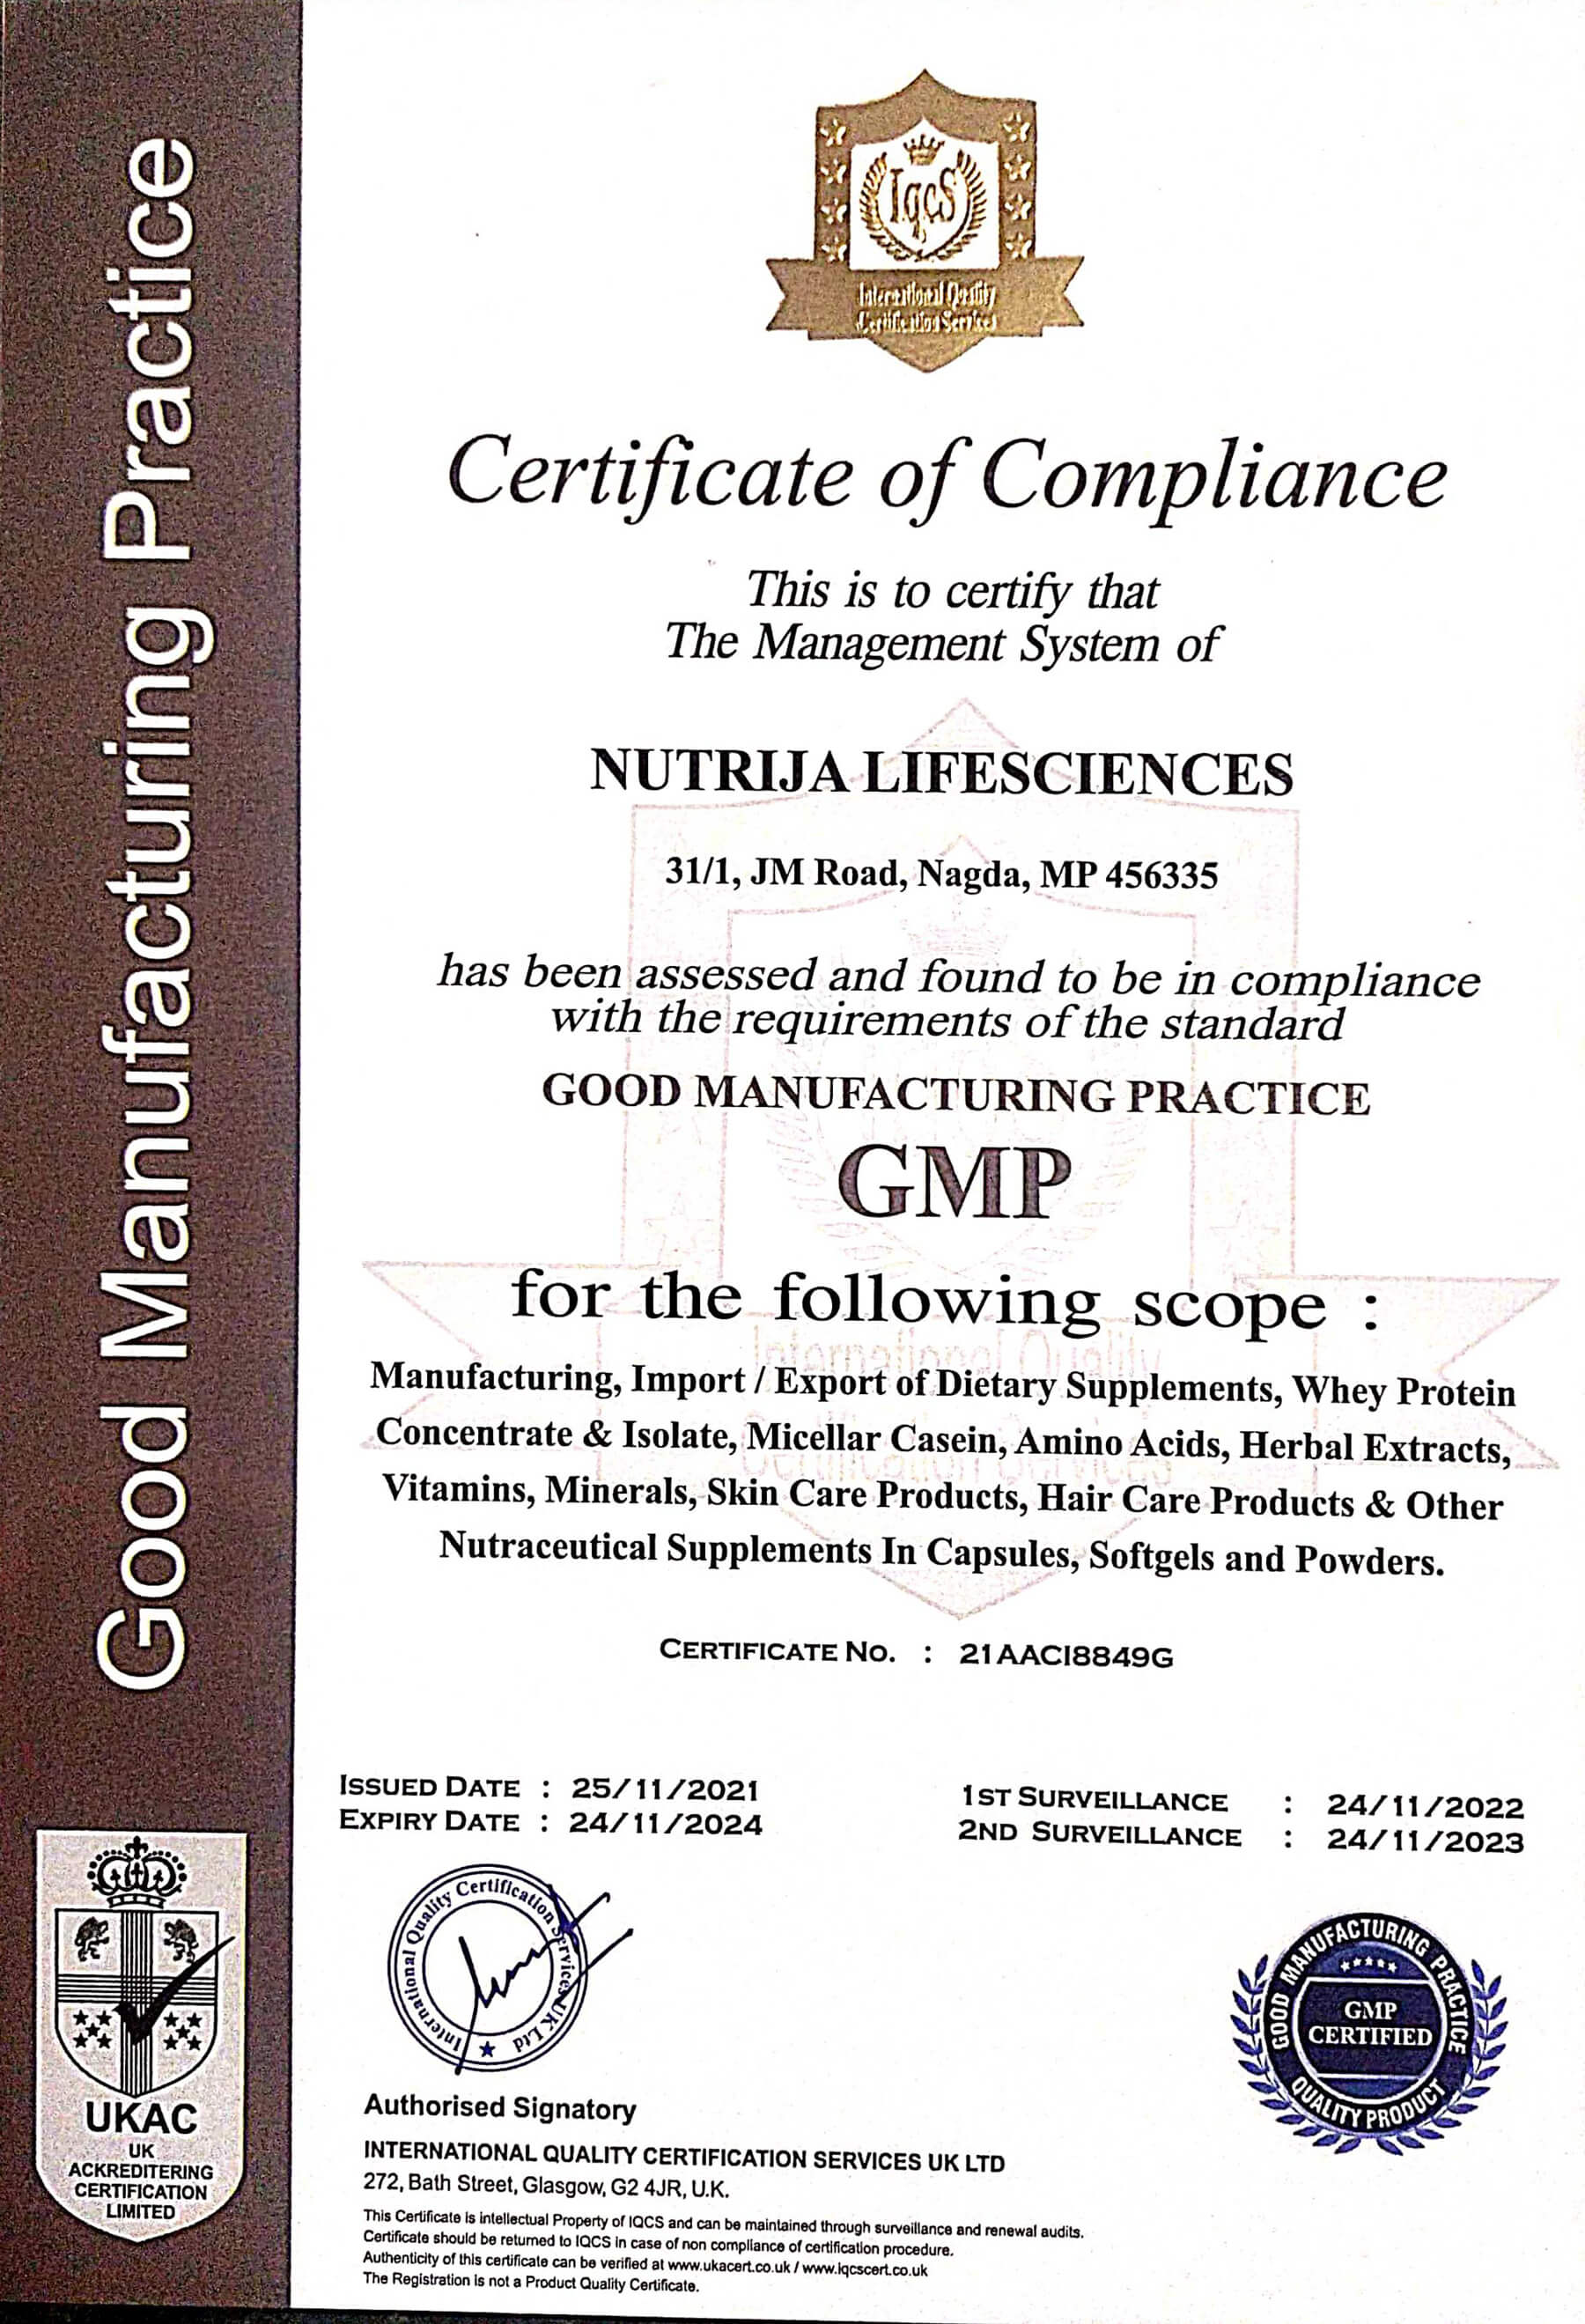 GMP CERTIFIED NUTRIJA LIFESCIENCES